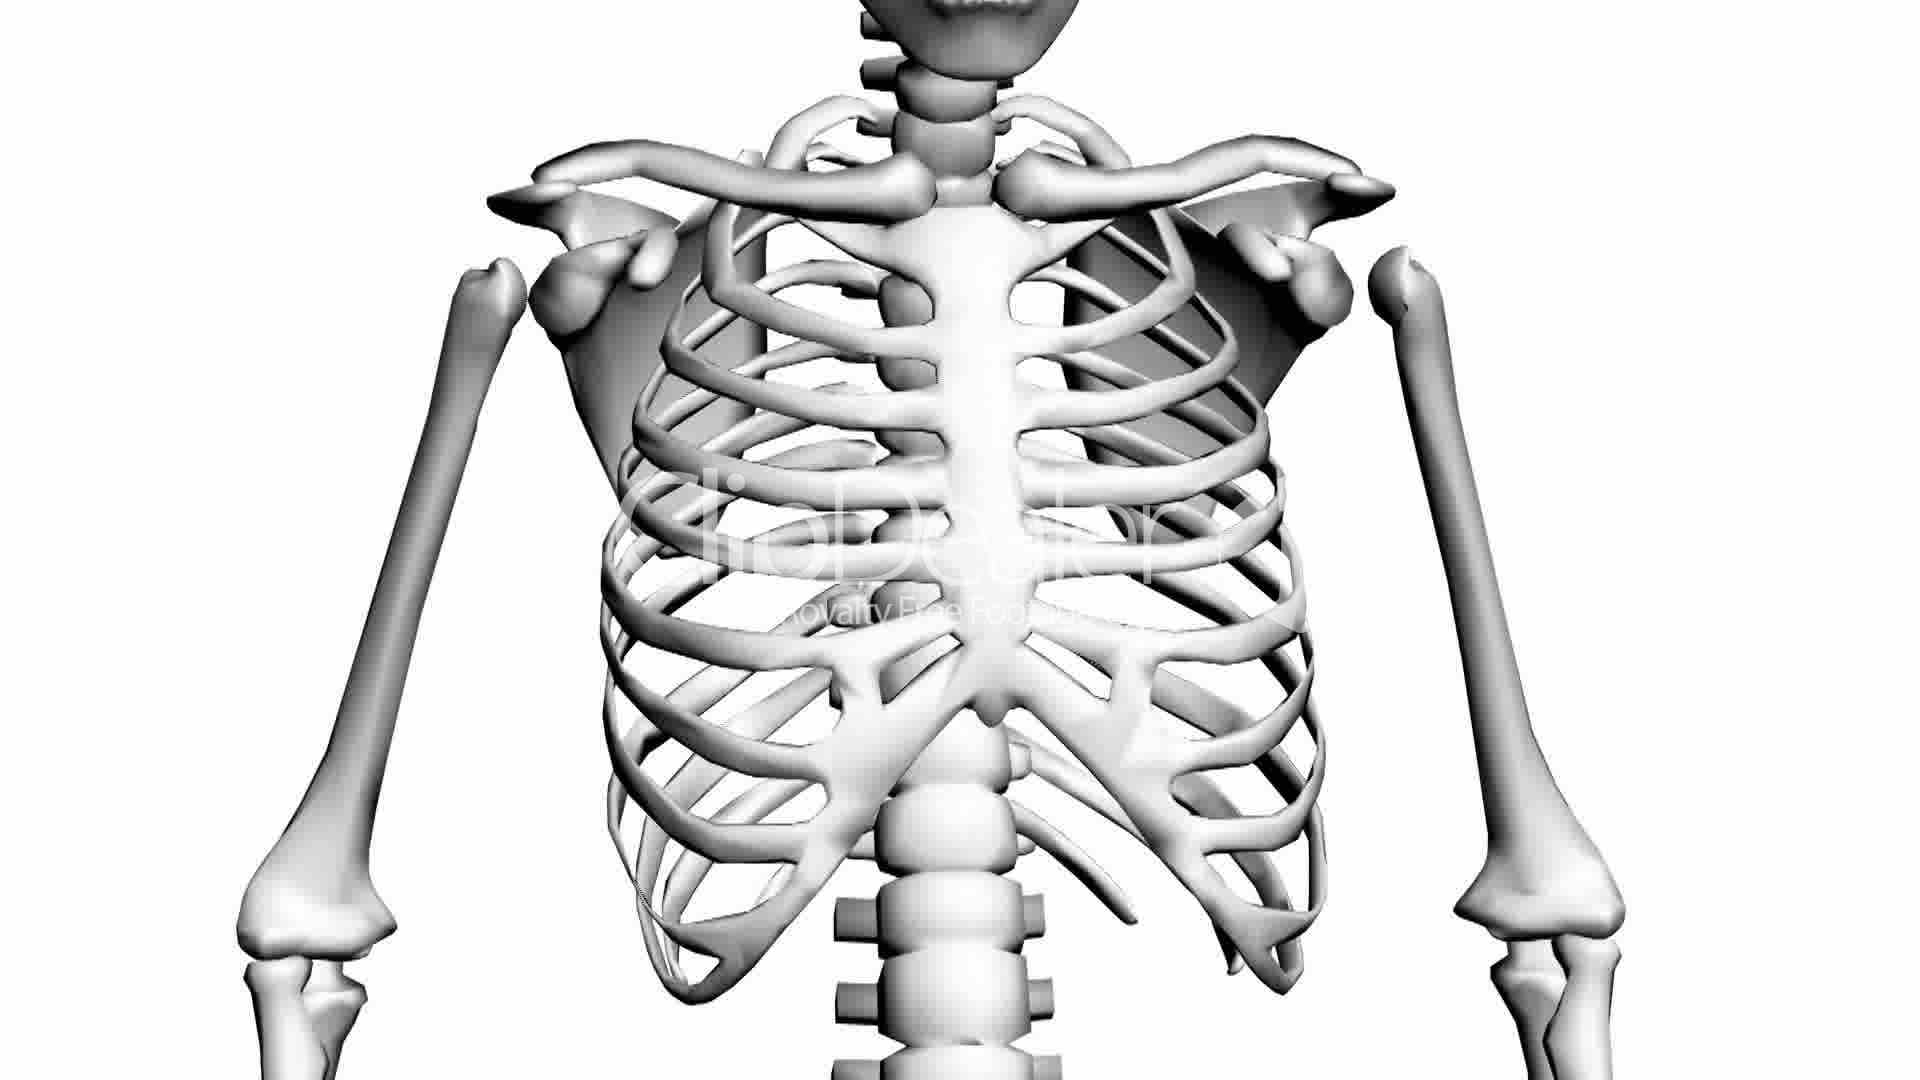 Human Skeleton Drawing at GetDrawings.com   Free for personal use ...